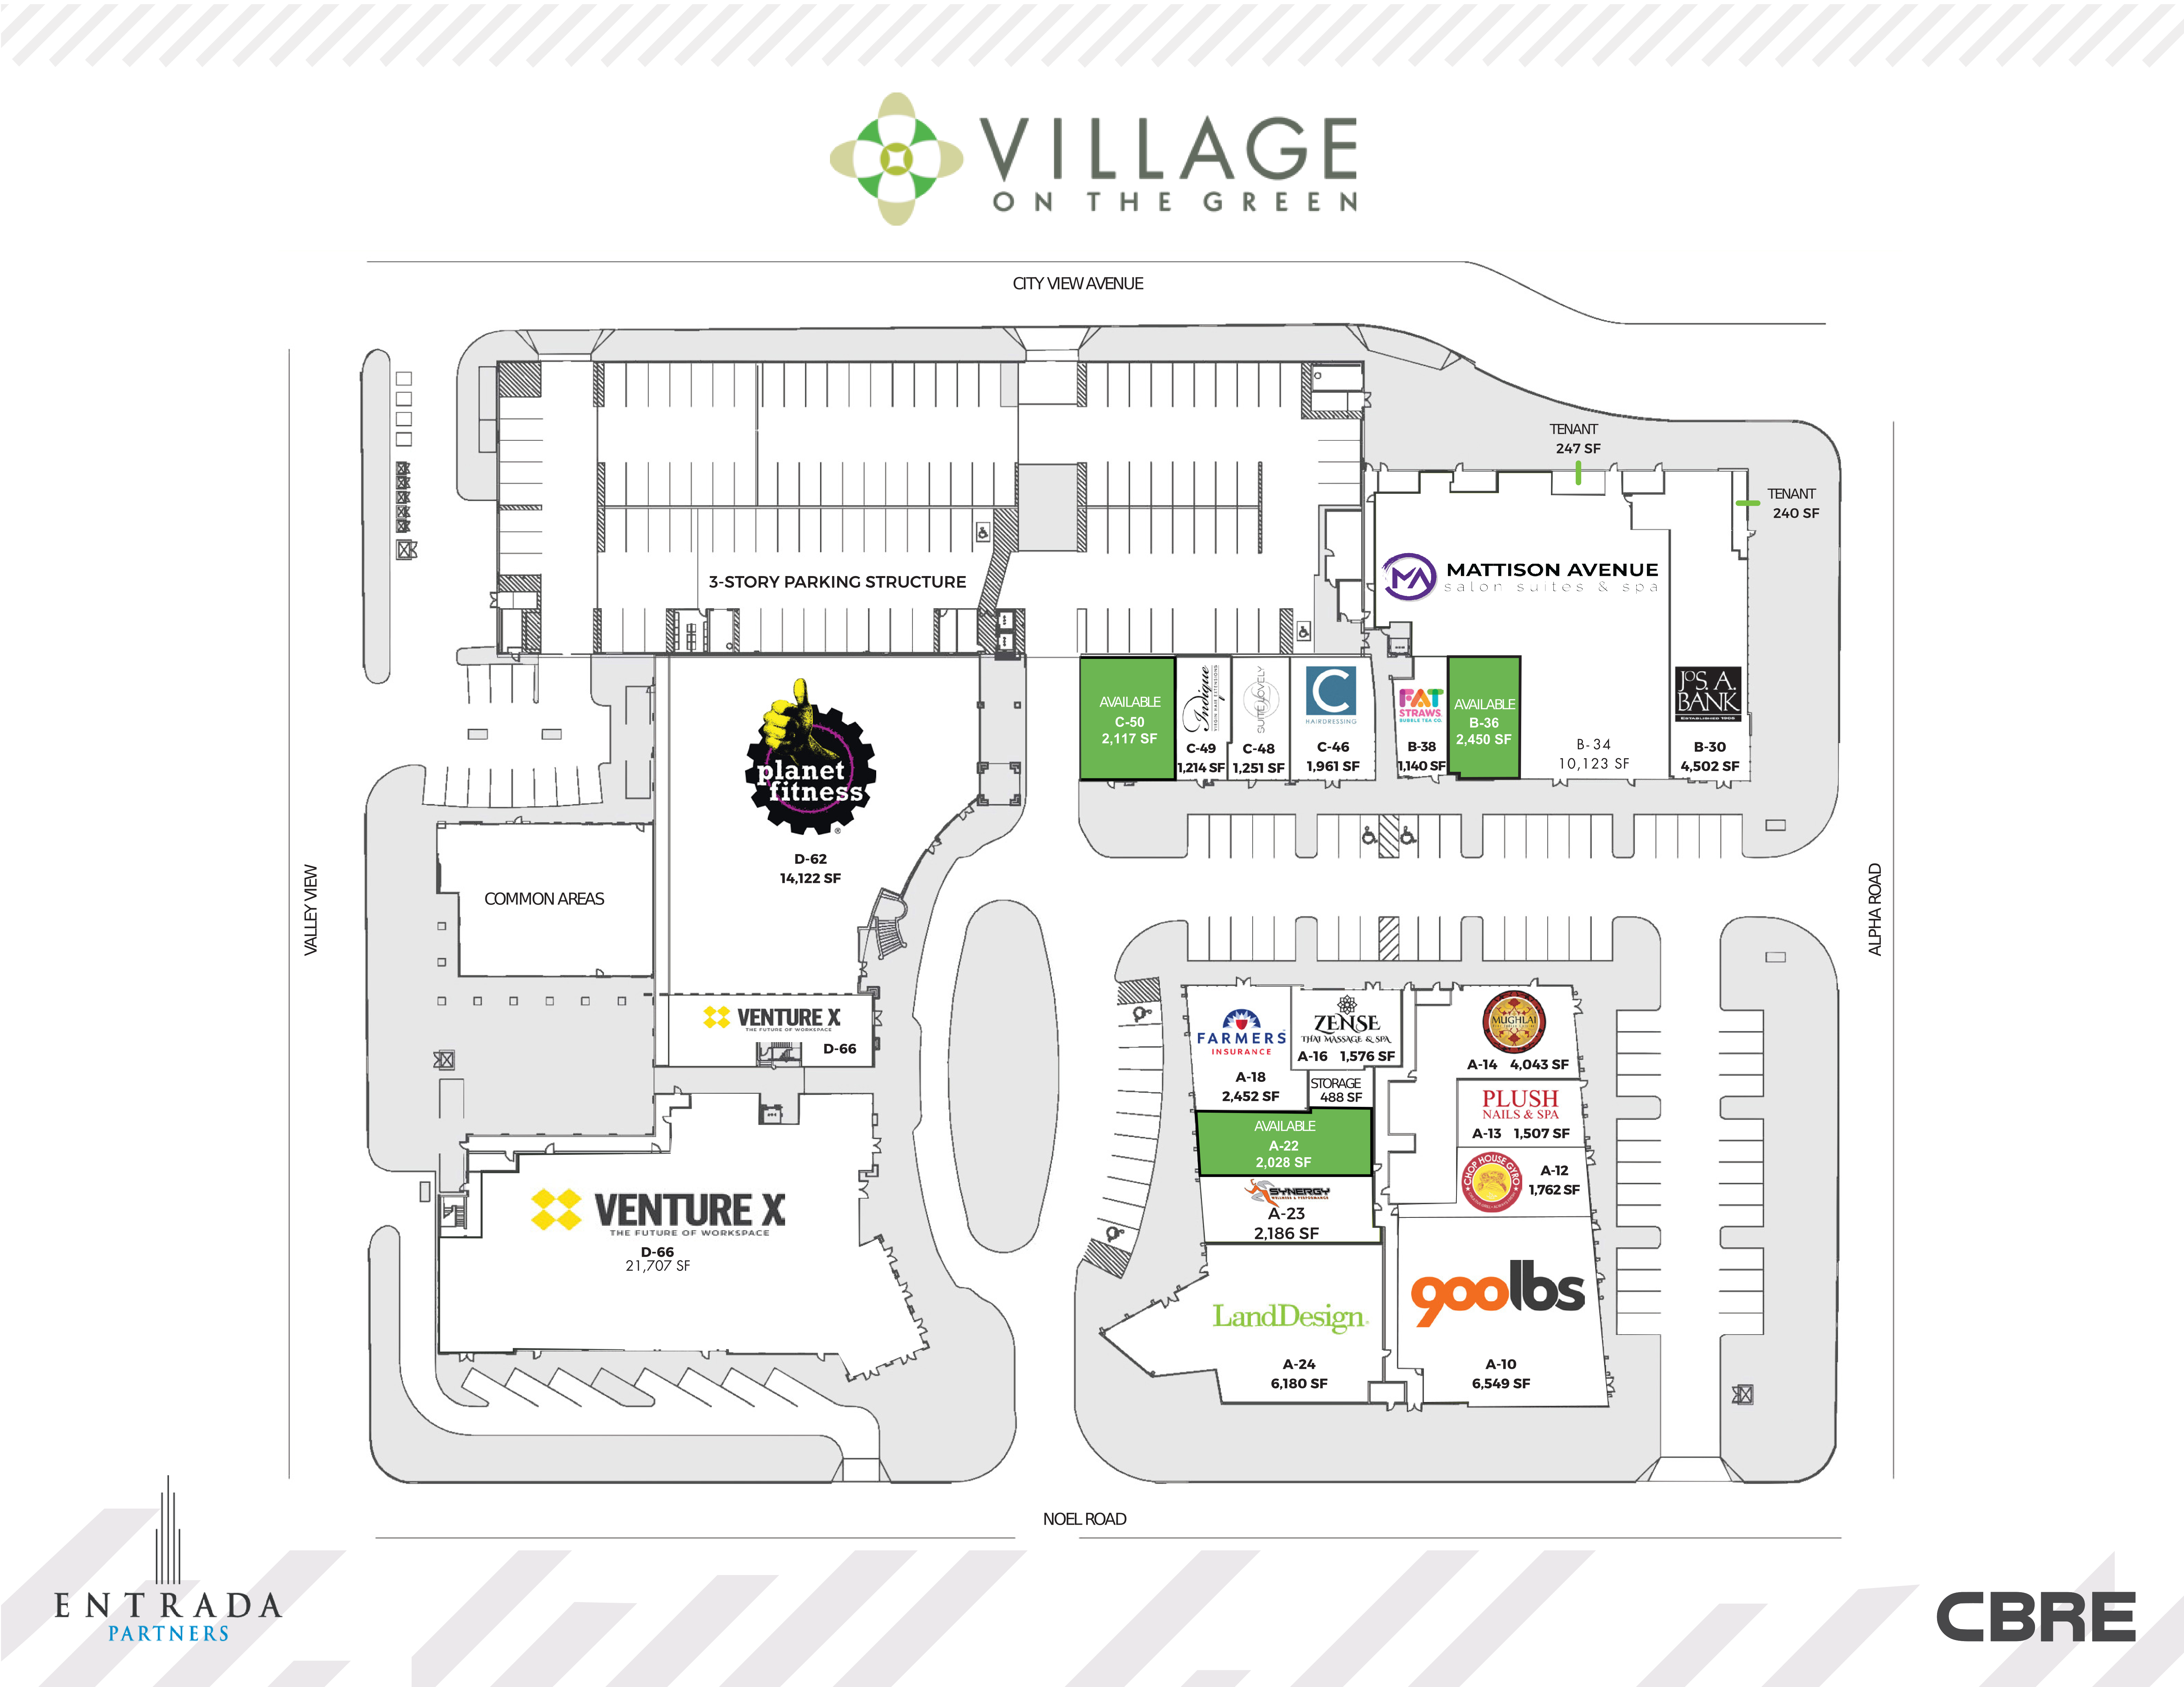 Village on the Green: site plan